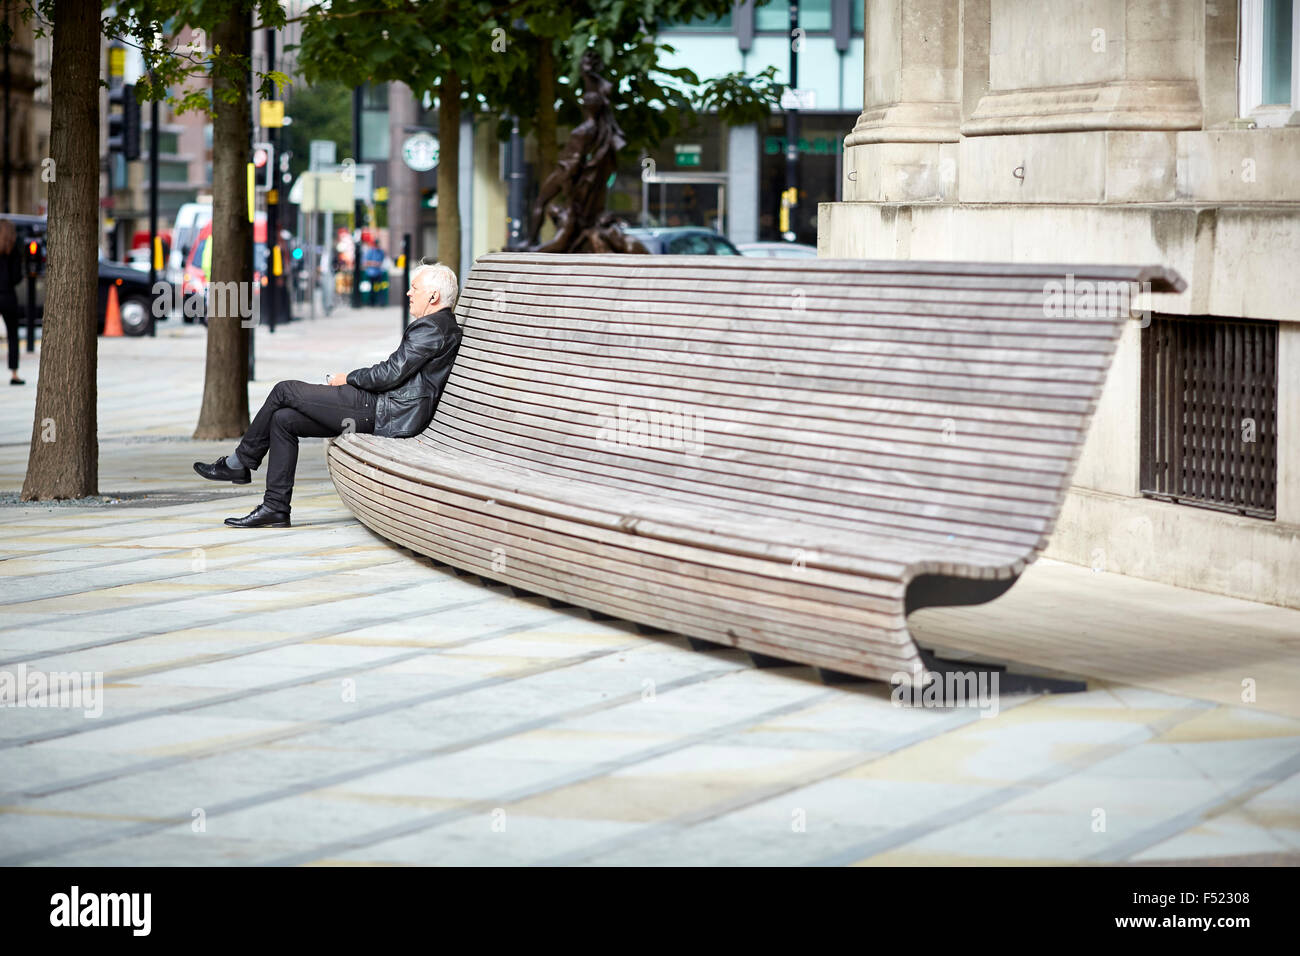 Modern Public Seating Benches Outside Manchester Central